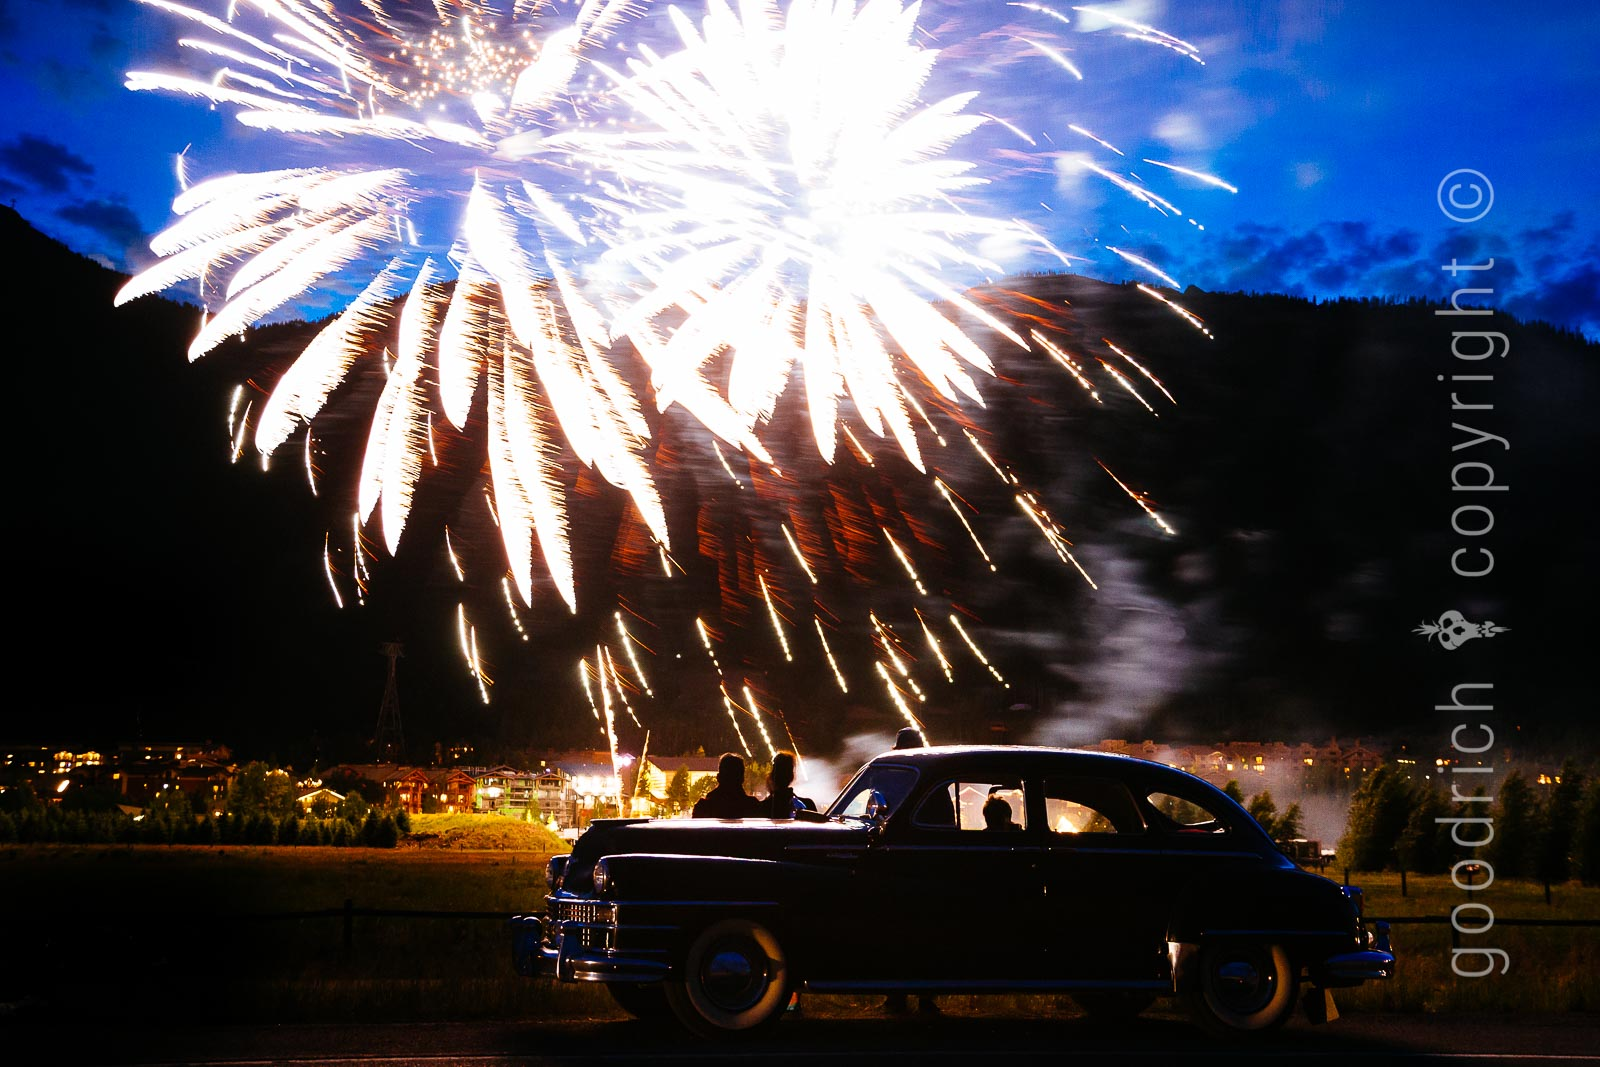 Photograph Fireworks - Car and Fireworks by Jay Goodrich